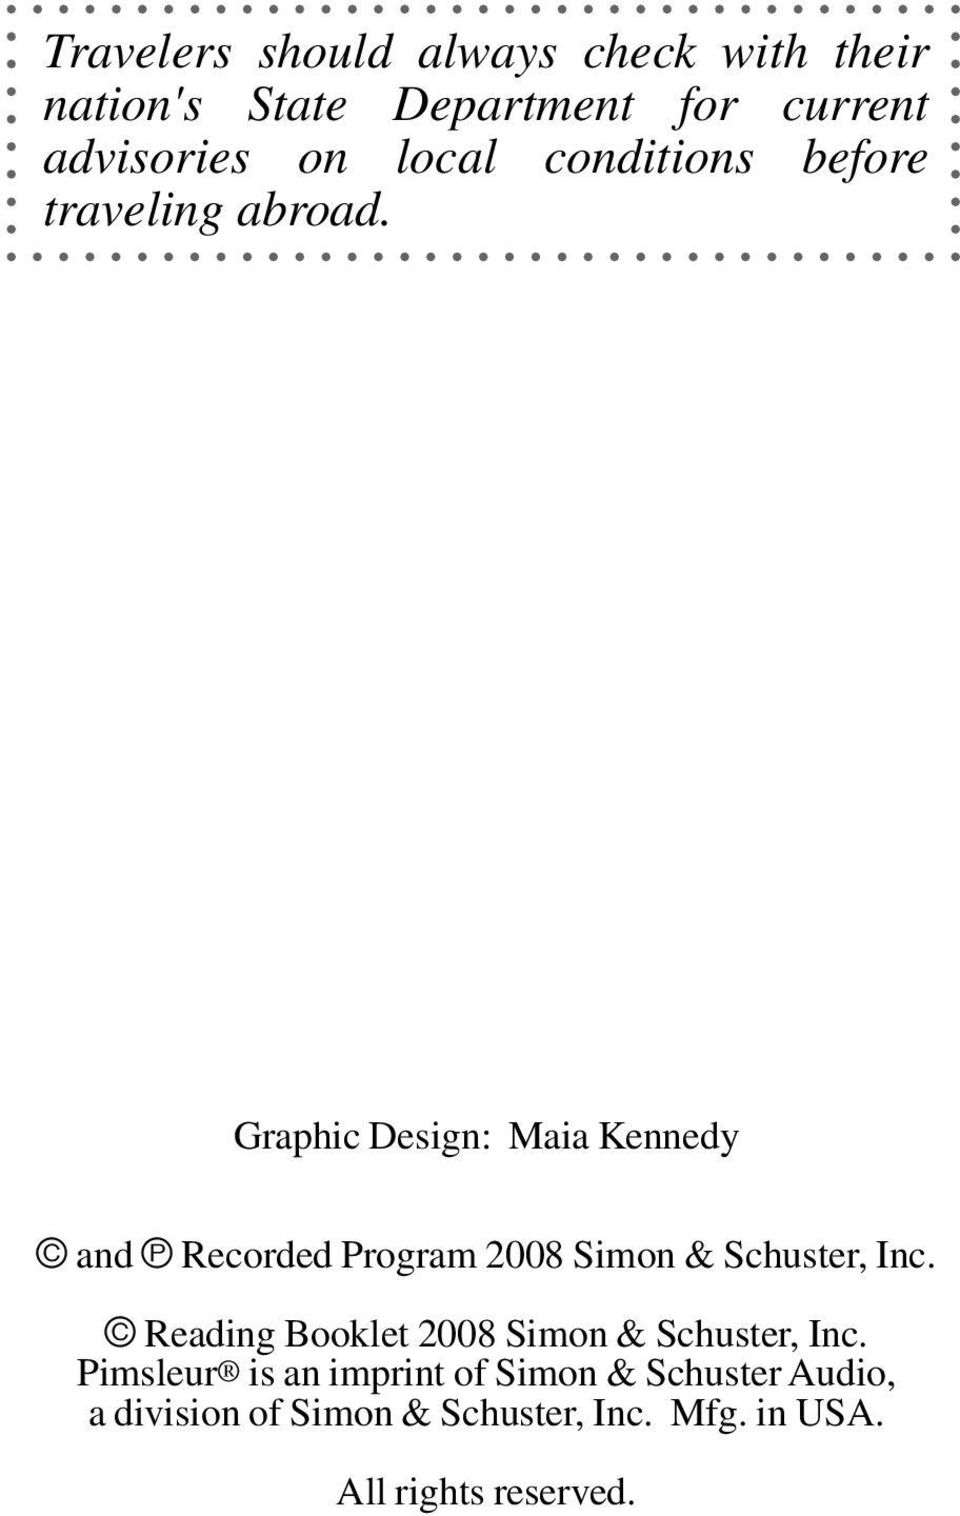 Graphic Design: Maia Kennedy and Recorded Program 2008 Simon & Schuster, Inc.